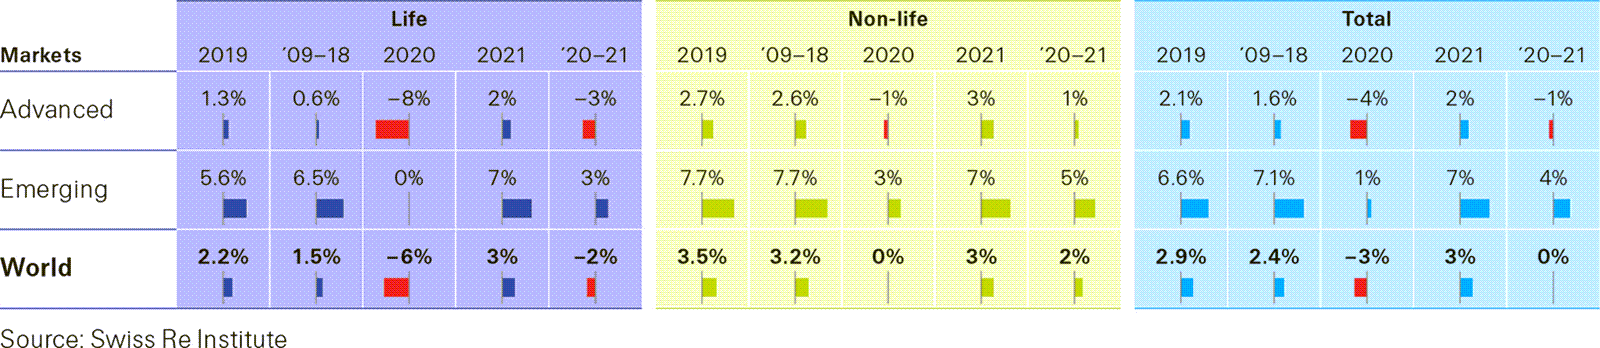 Data table shows advanced markets, emerging markets, world - Life and non life attributes sigma 4/2020